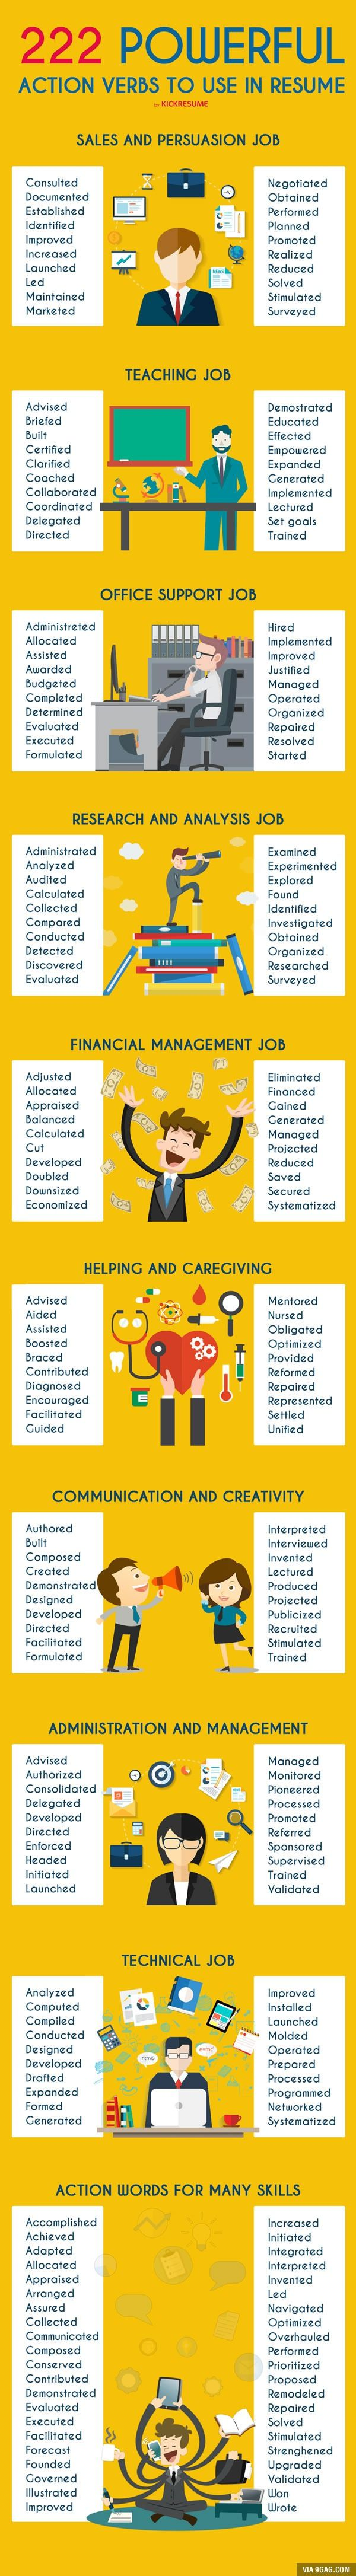 Resume Cheat Sheet: 222 Action Verbs To Use In Your New Resume ...